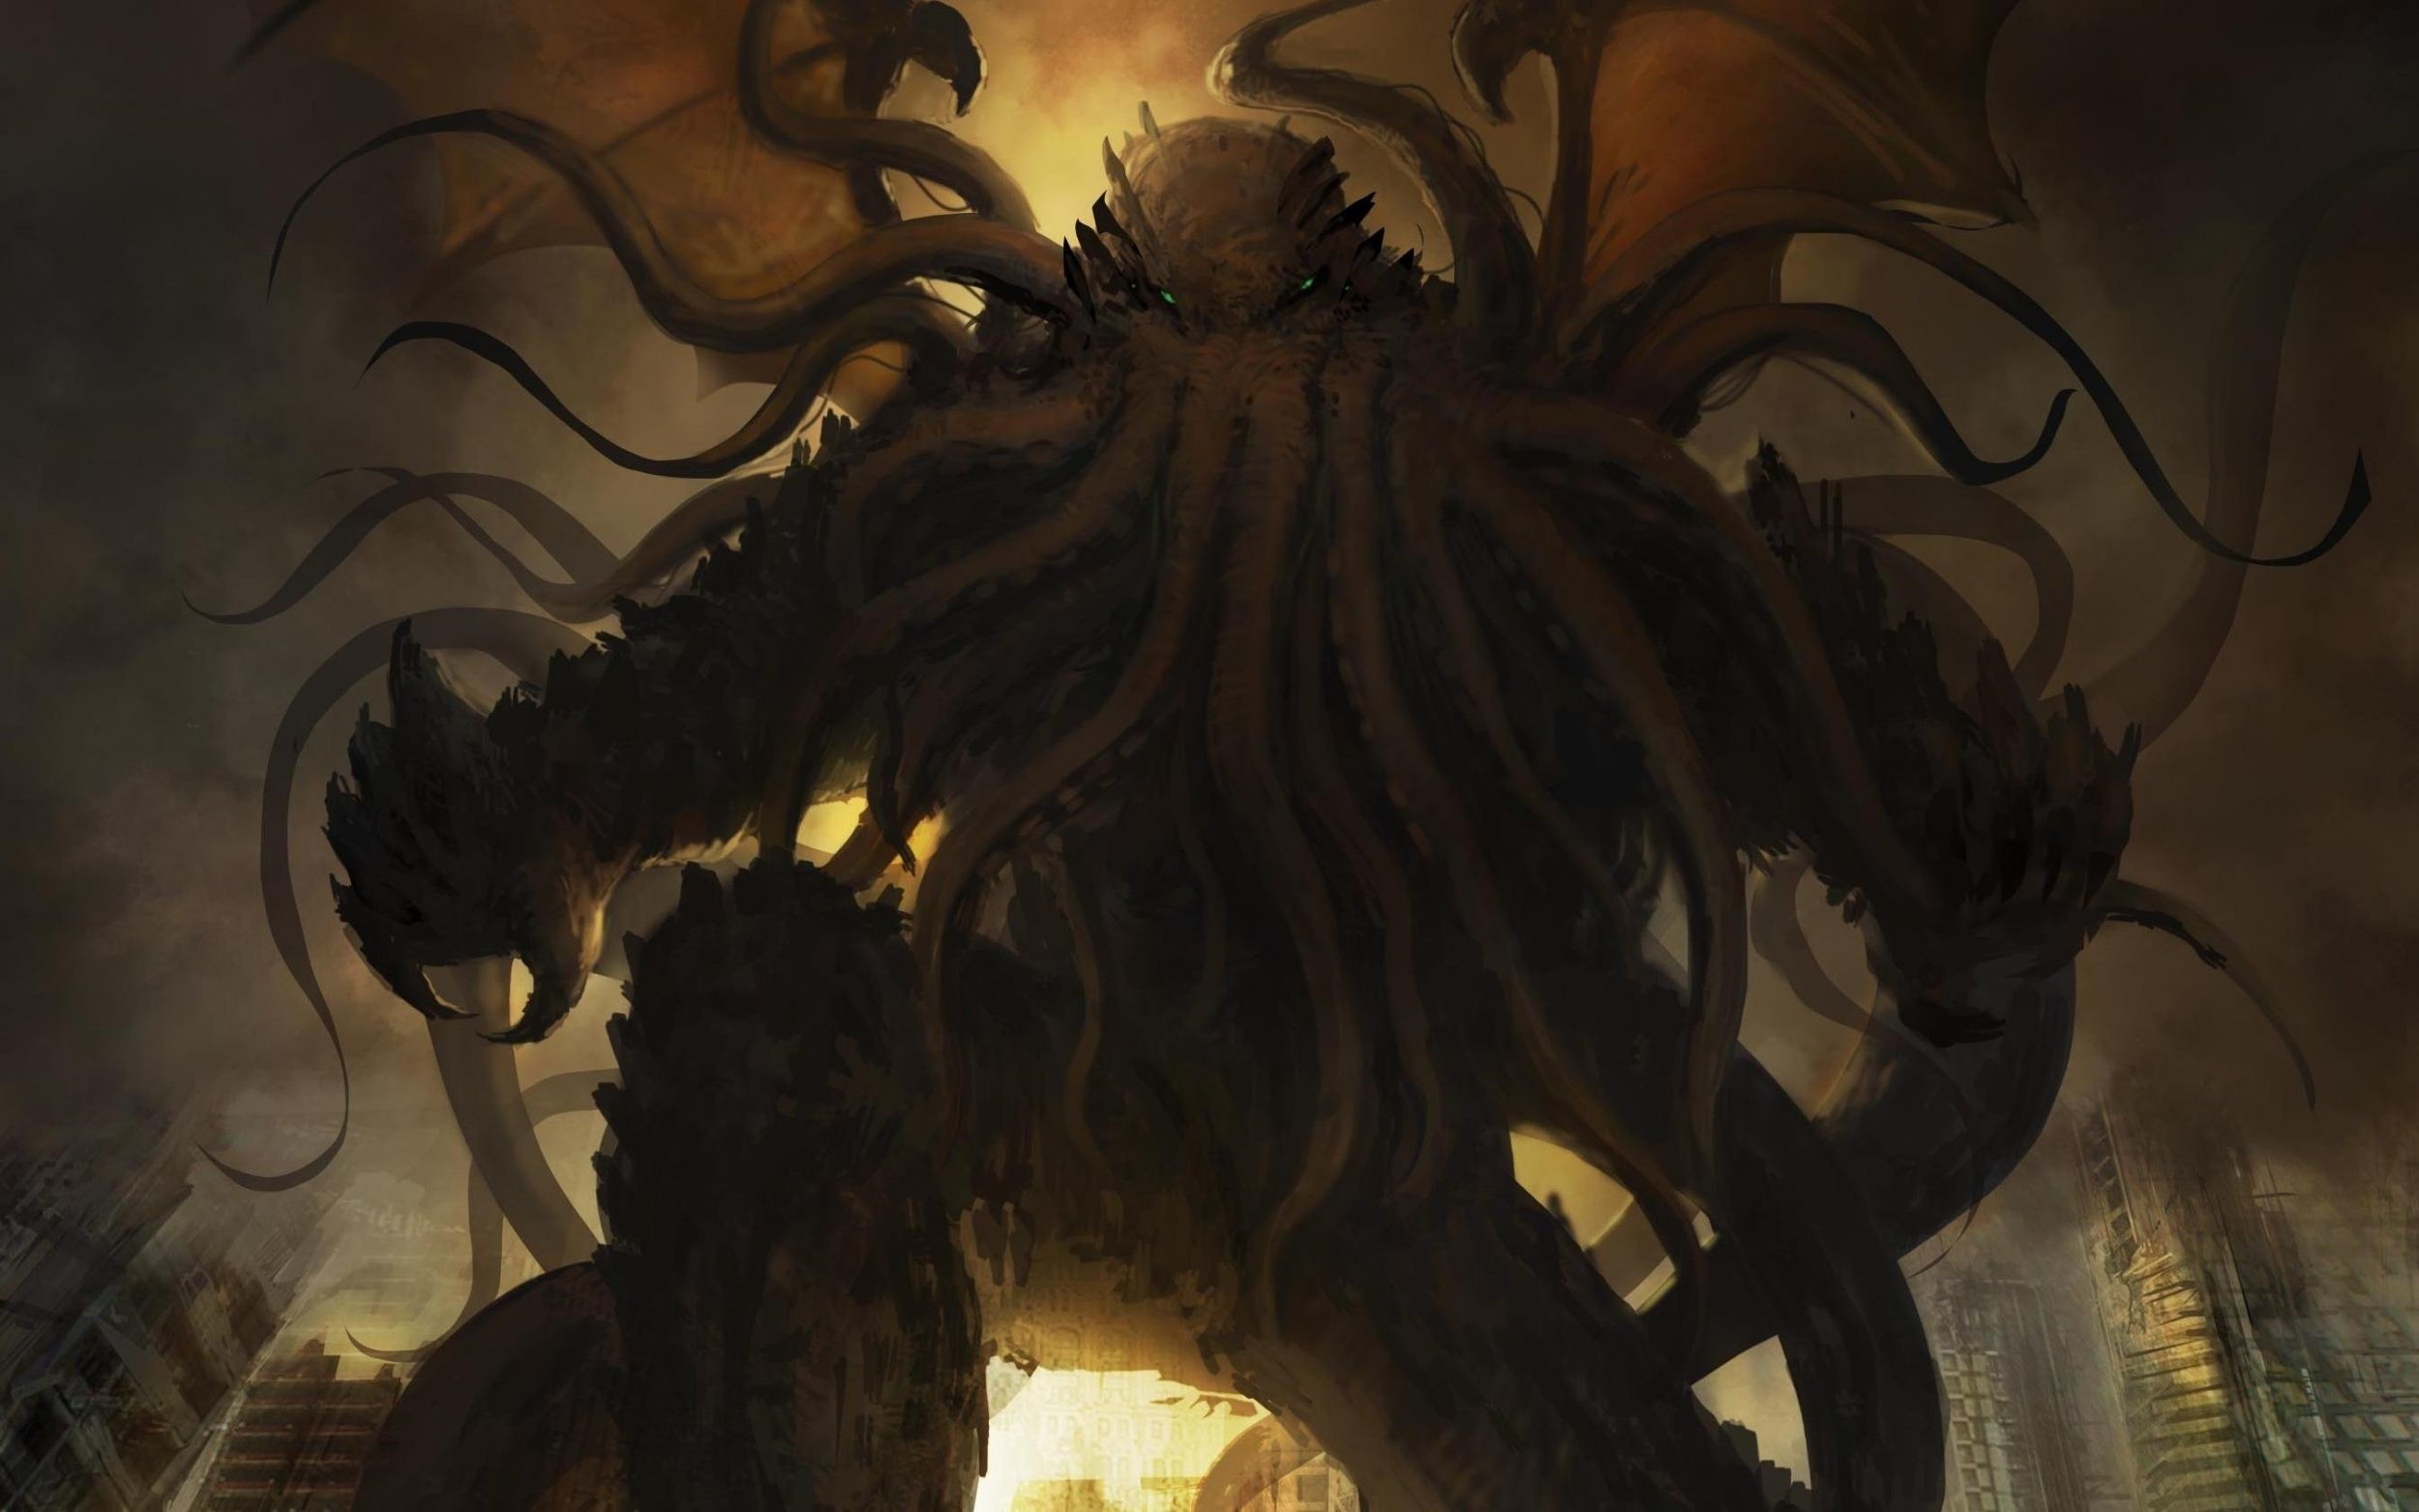 Res: 2500x1563, Cthulhu Wallpaper by Isabelle Mohn, Wallpapers and Pictures |Full HD for  mobile and desktop